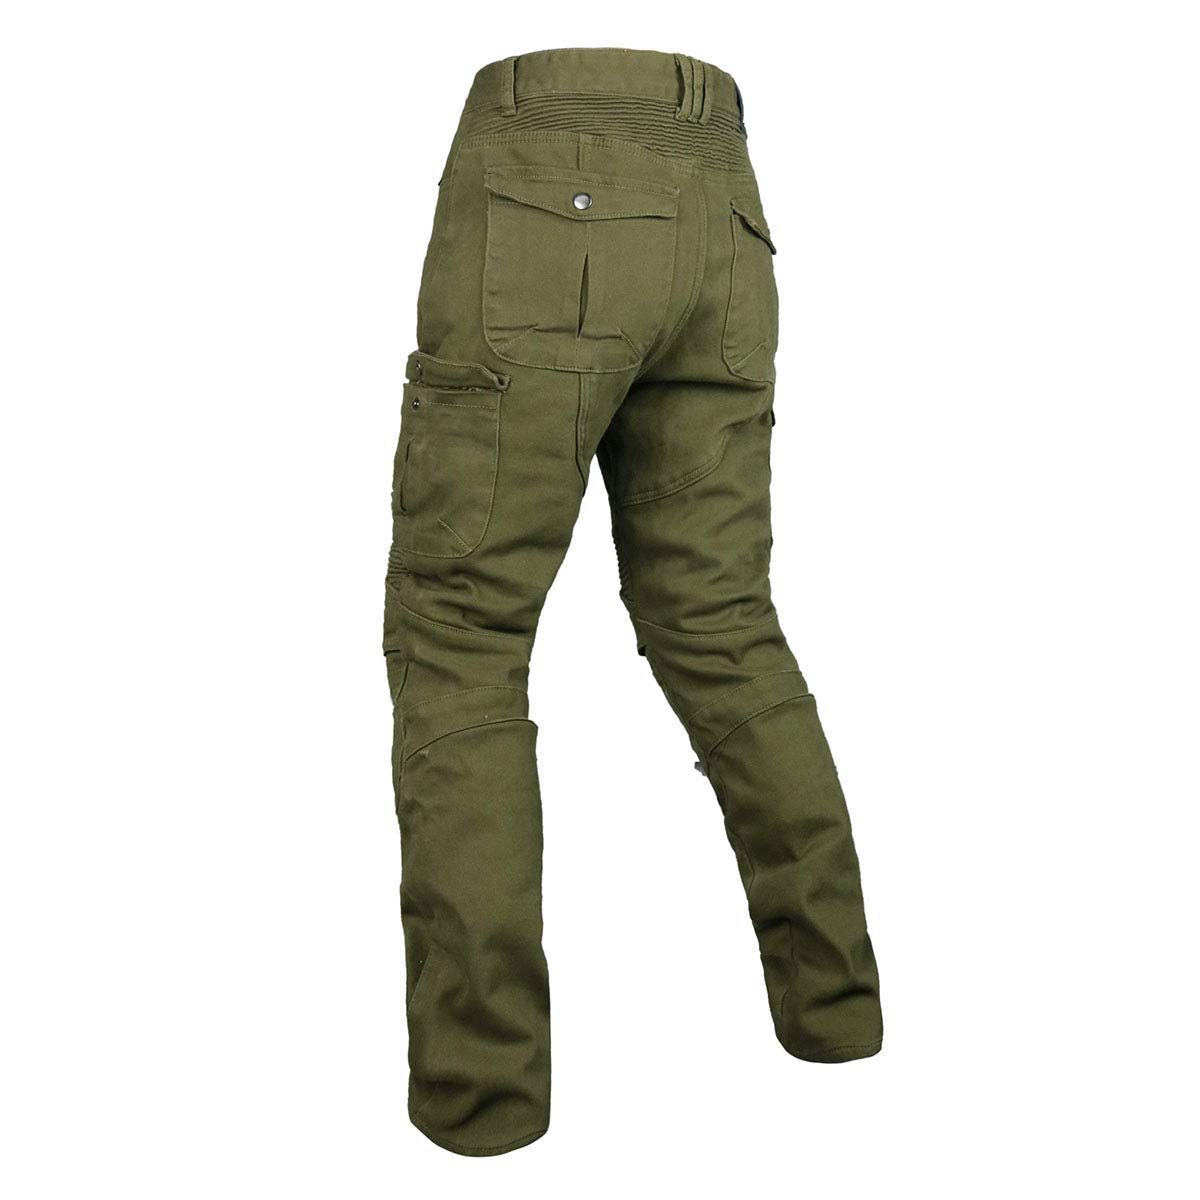 Black, L Mens /& Womens Velvet Warm Motocross Racing Pants Winter Motorcycle Jeans Riding Protection Trousers with CE Knee Hip Armor VES-36